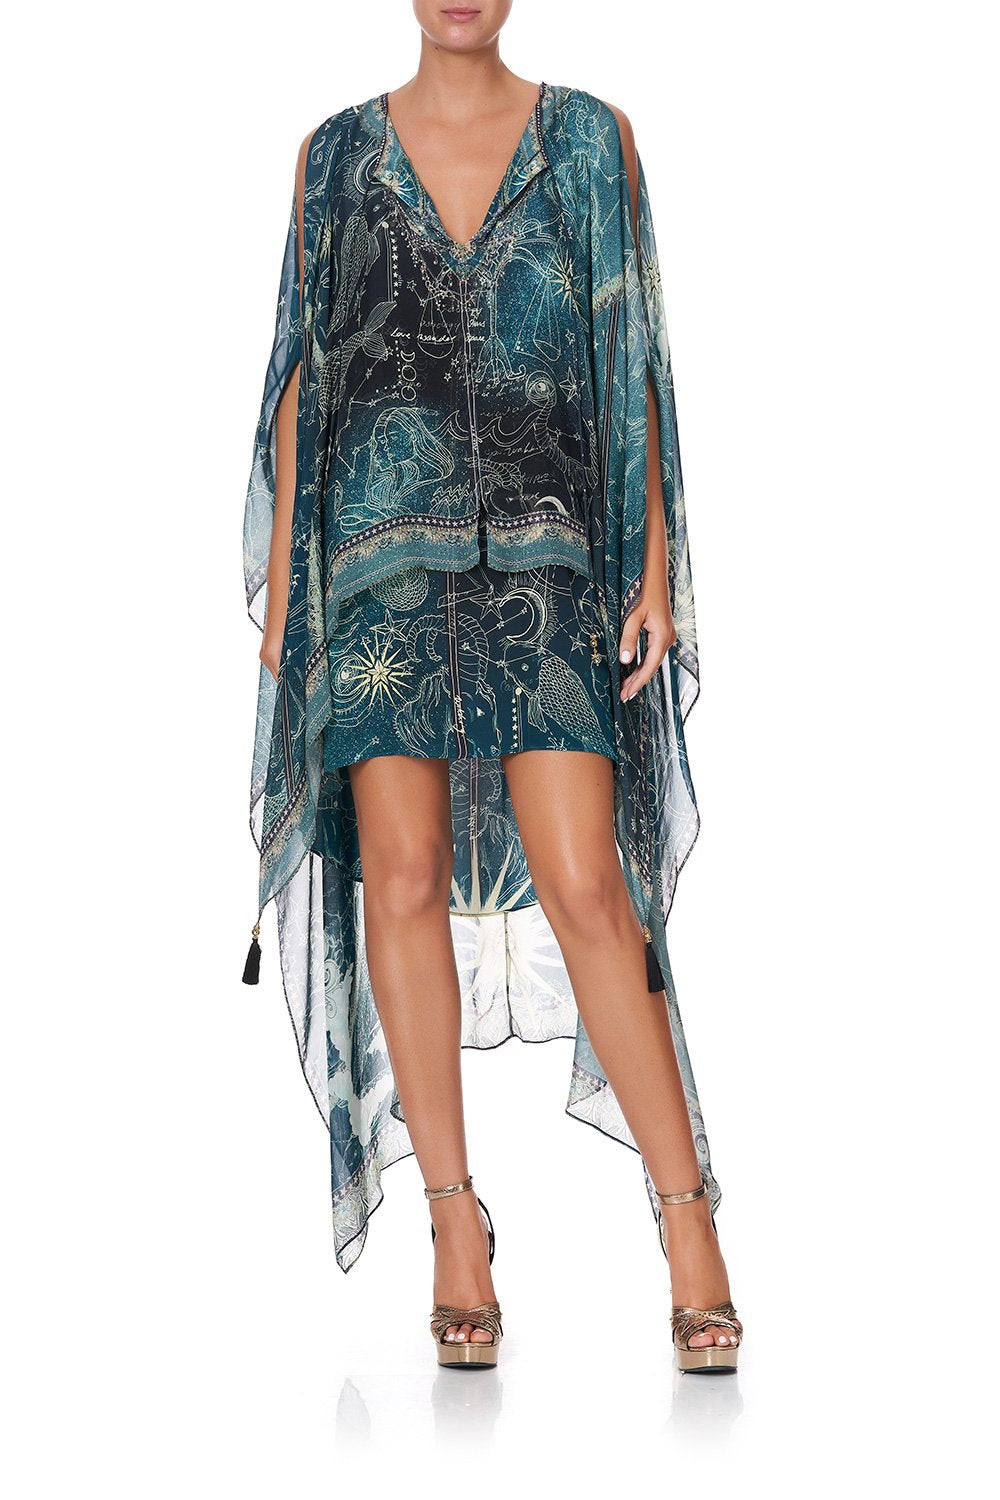 LONG SHEER OVERLAY DRESS INTO THE MYSTIQUE